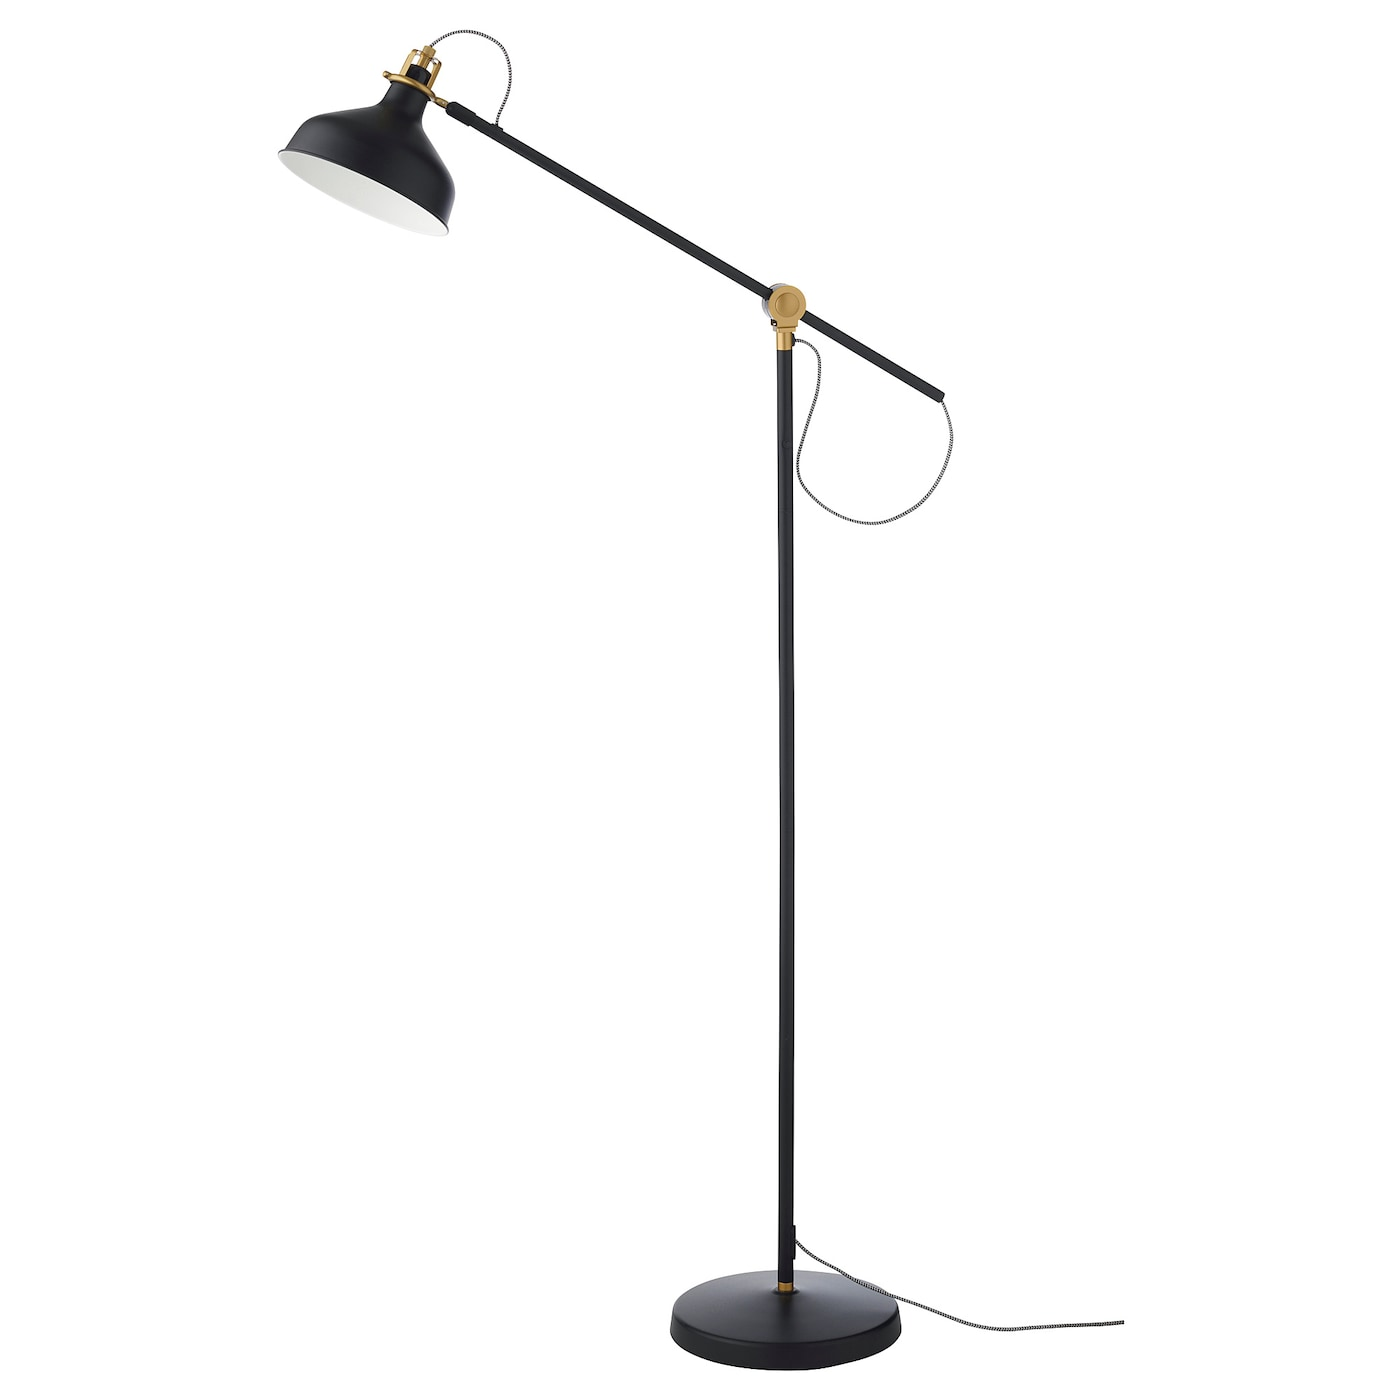 Ikea Ranarp Floor Reading Lamp Provides A Directed Light That Is Great For